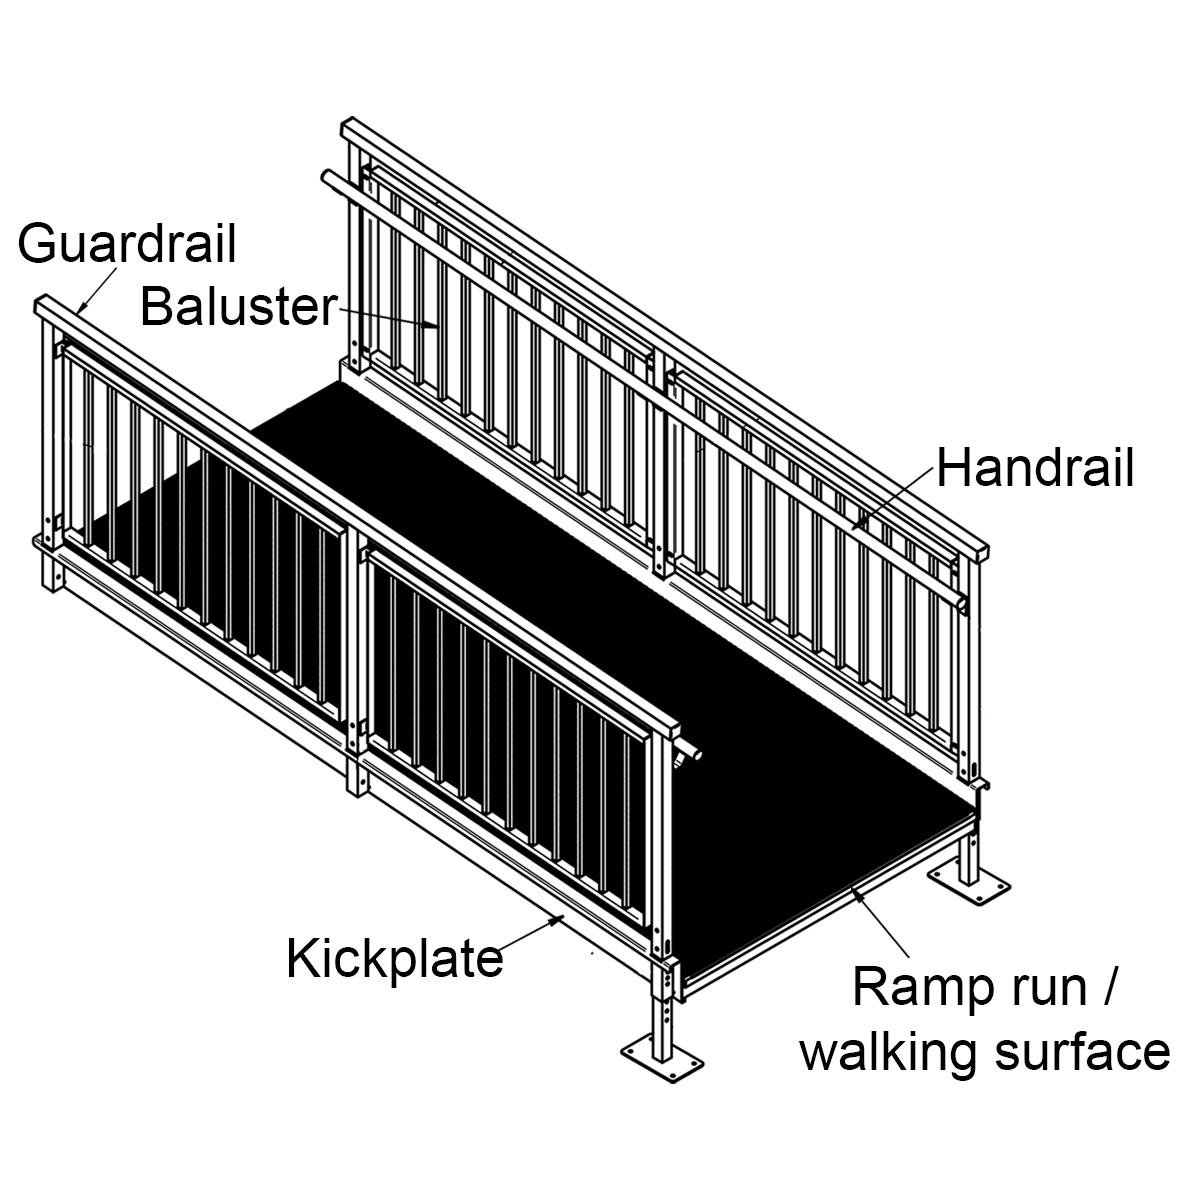 ADA ramp section